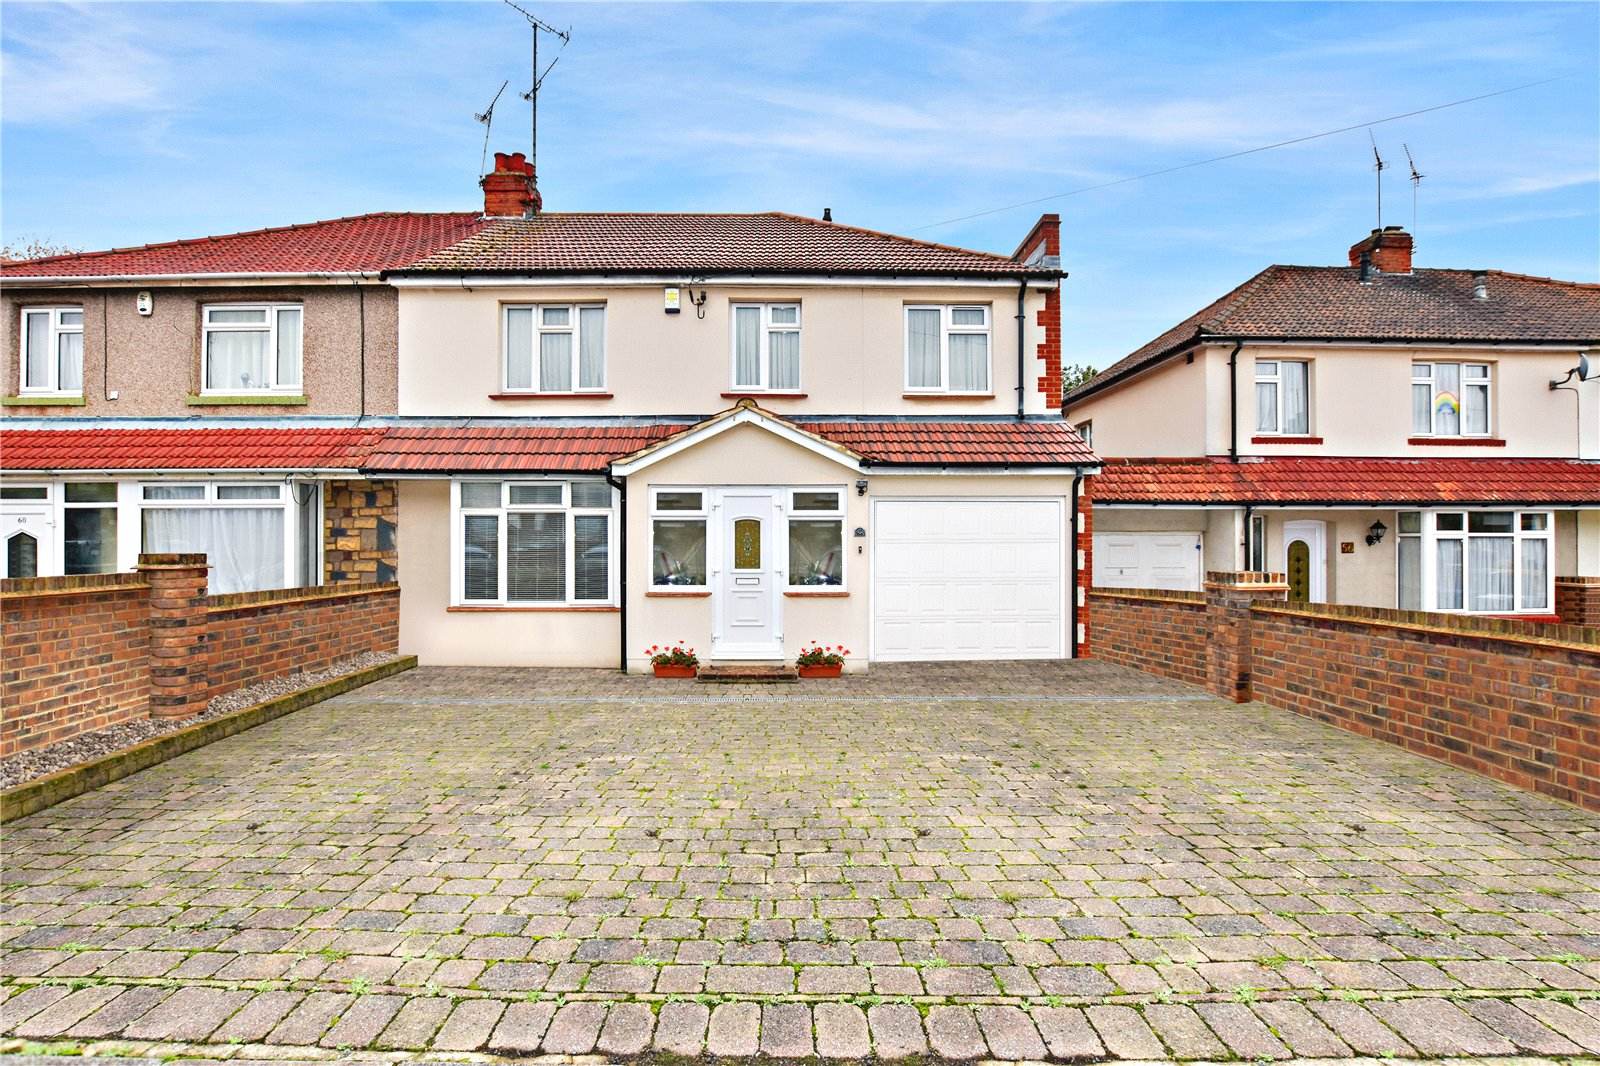 Northall Road, Bexleyheath, Kent, DA7